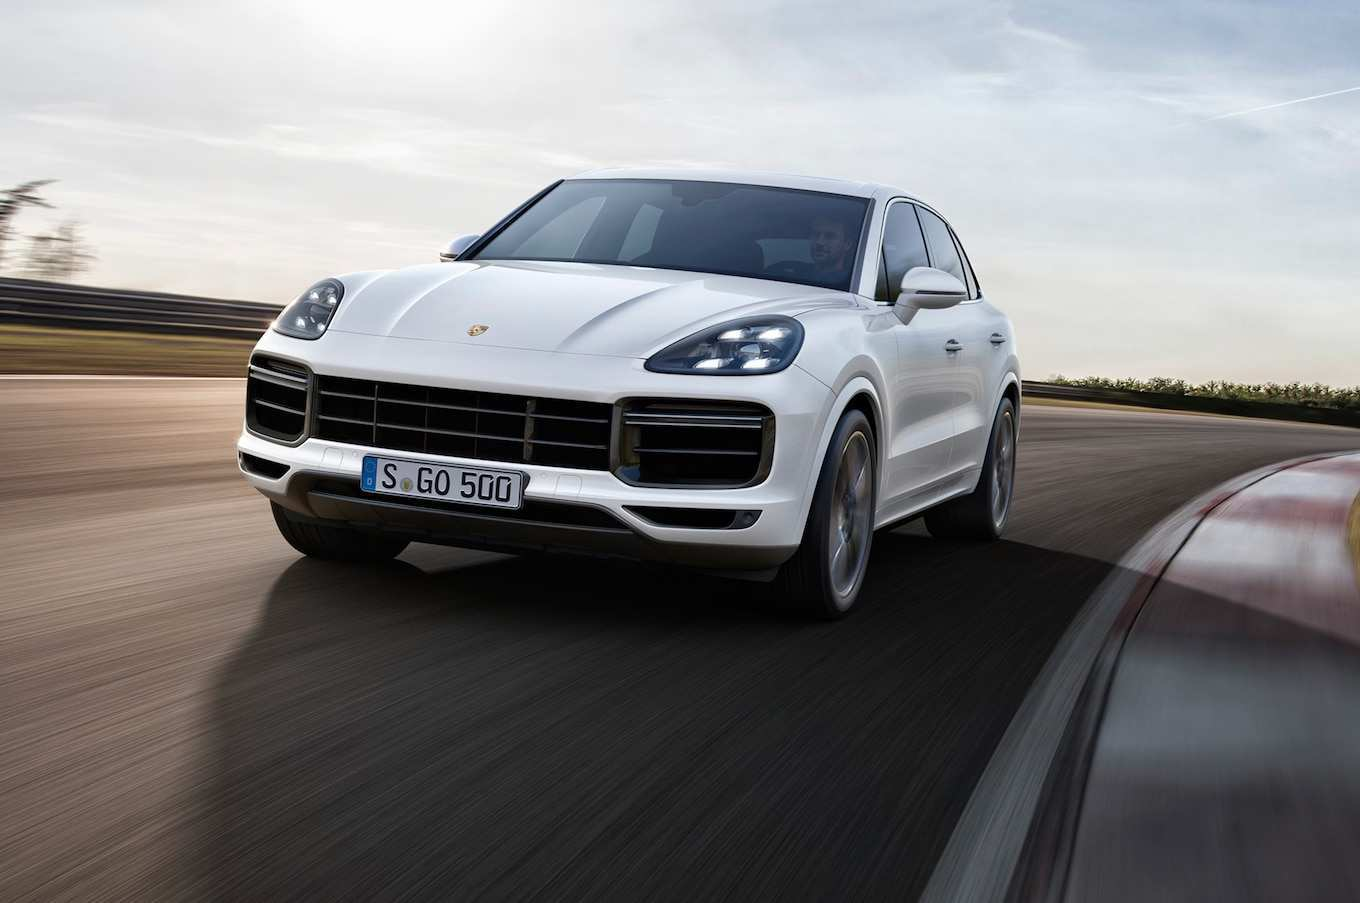 92 The 2019 Porsche Cayenne First Look Research New with 2019 Porsche Cayenne First Look